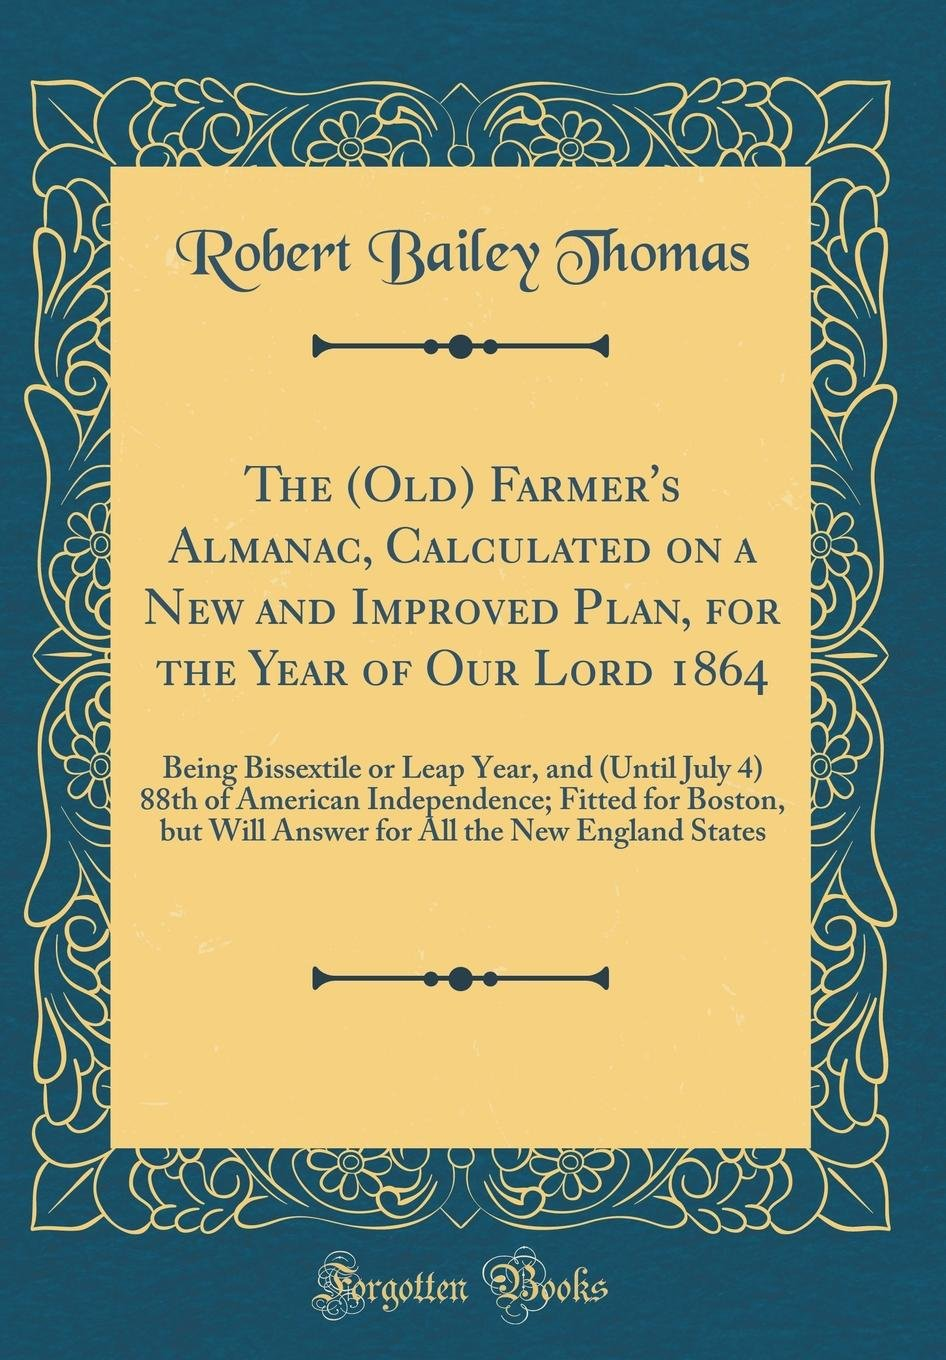 Download The (Old) Farmer's Almanac, Calculated on a New and Improved Plan, for the Year of Our Lord 1864: Being Bissextile or Leap Year, and (Until July 4) ... Will Answer for All the New England States PDF